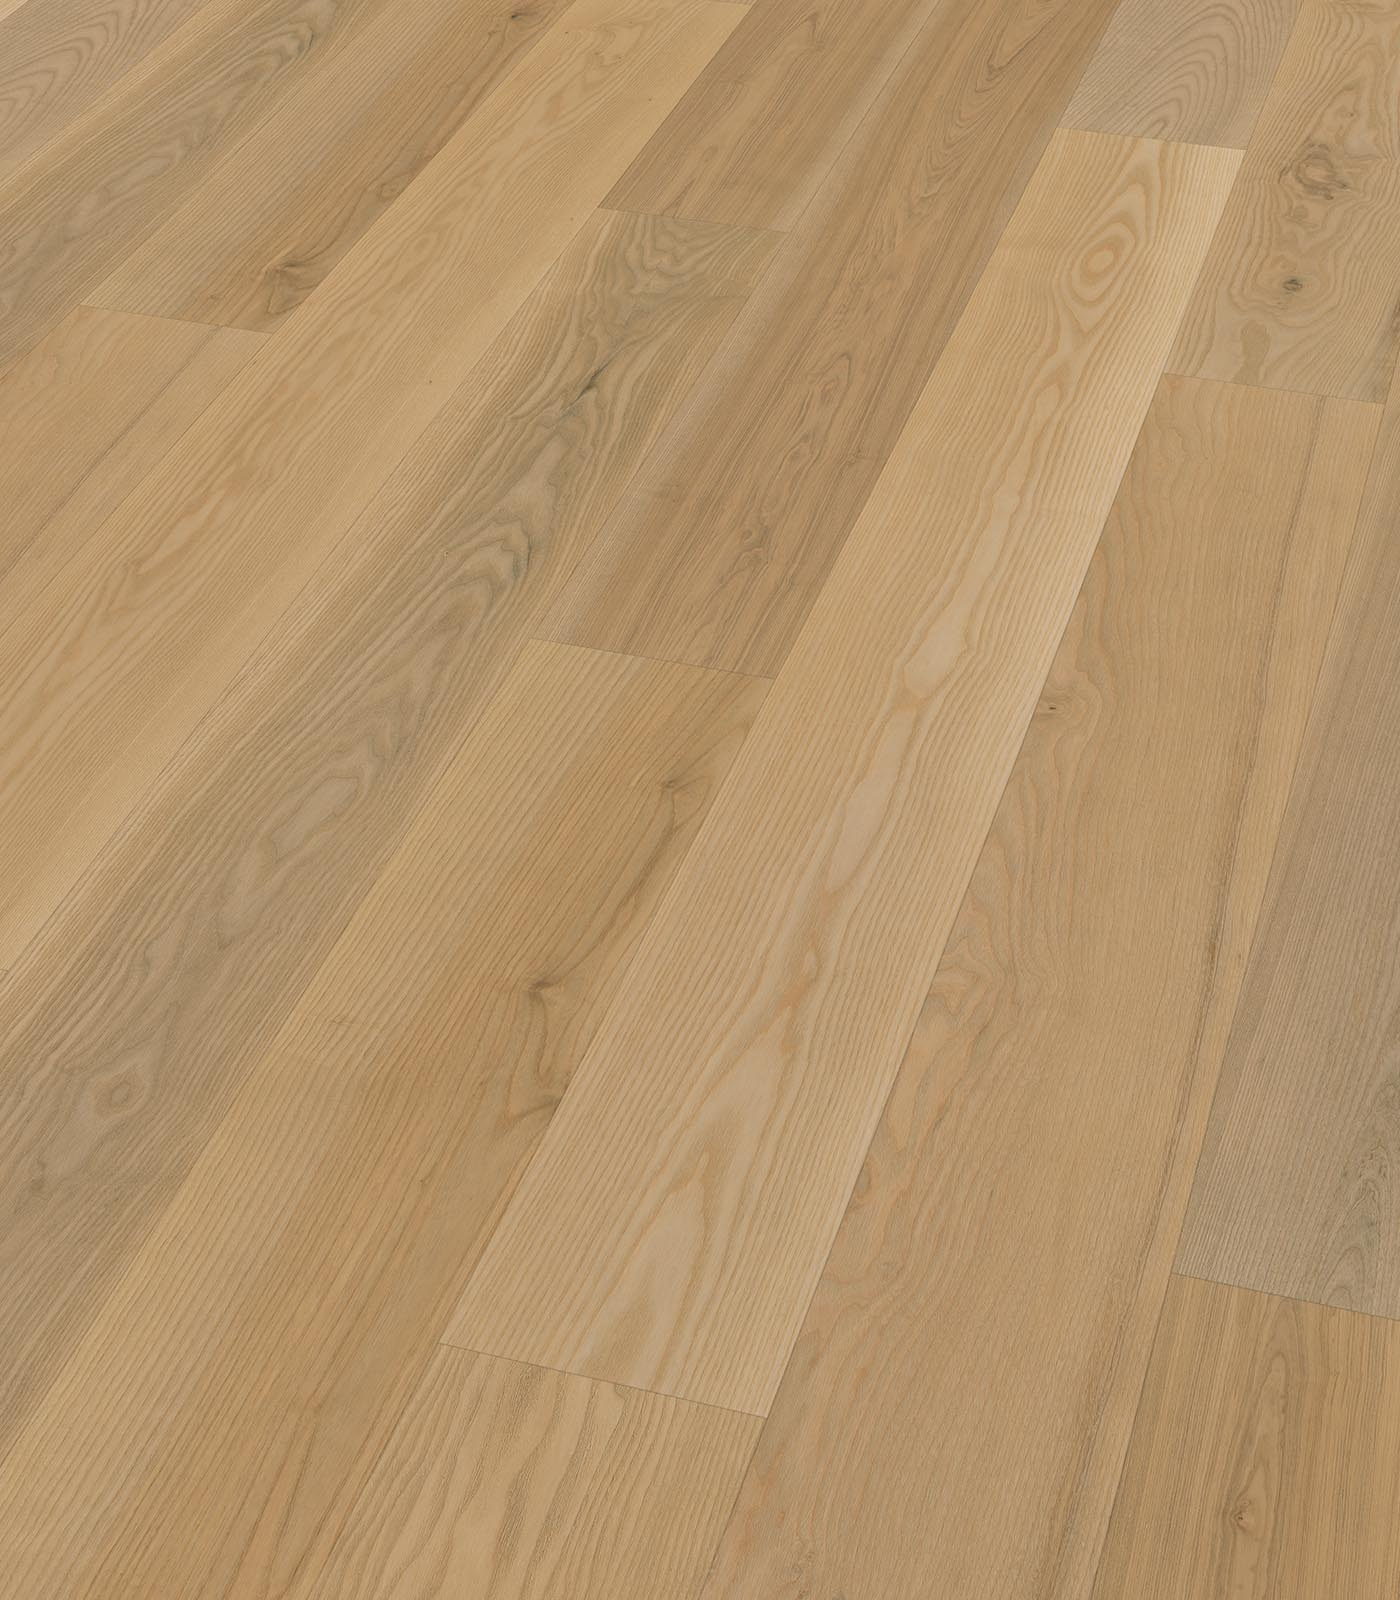 London-After Oak Collection-European Ash Floors-Angle